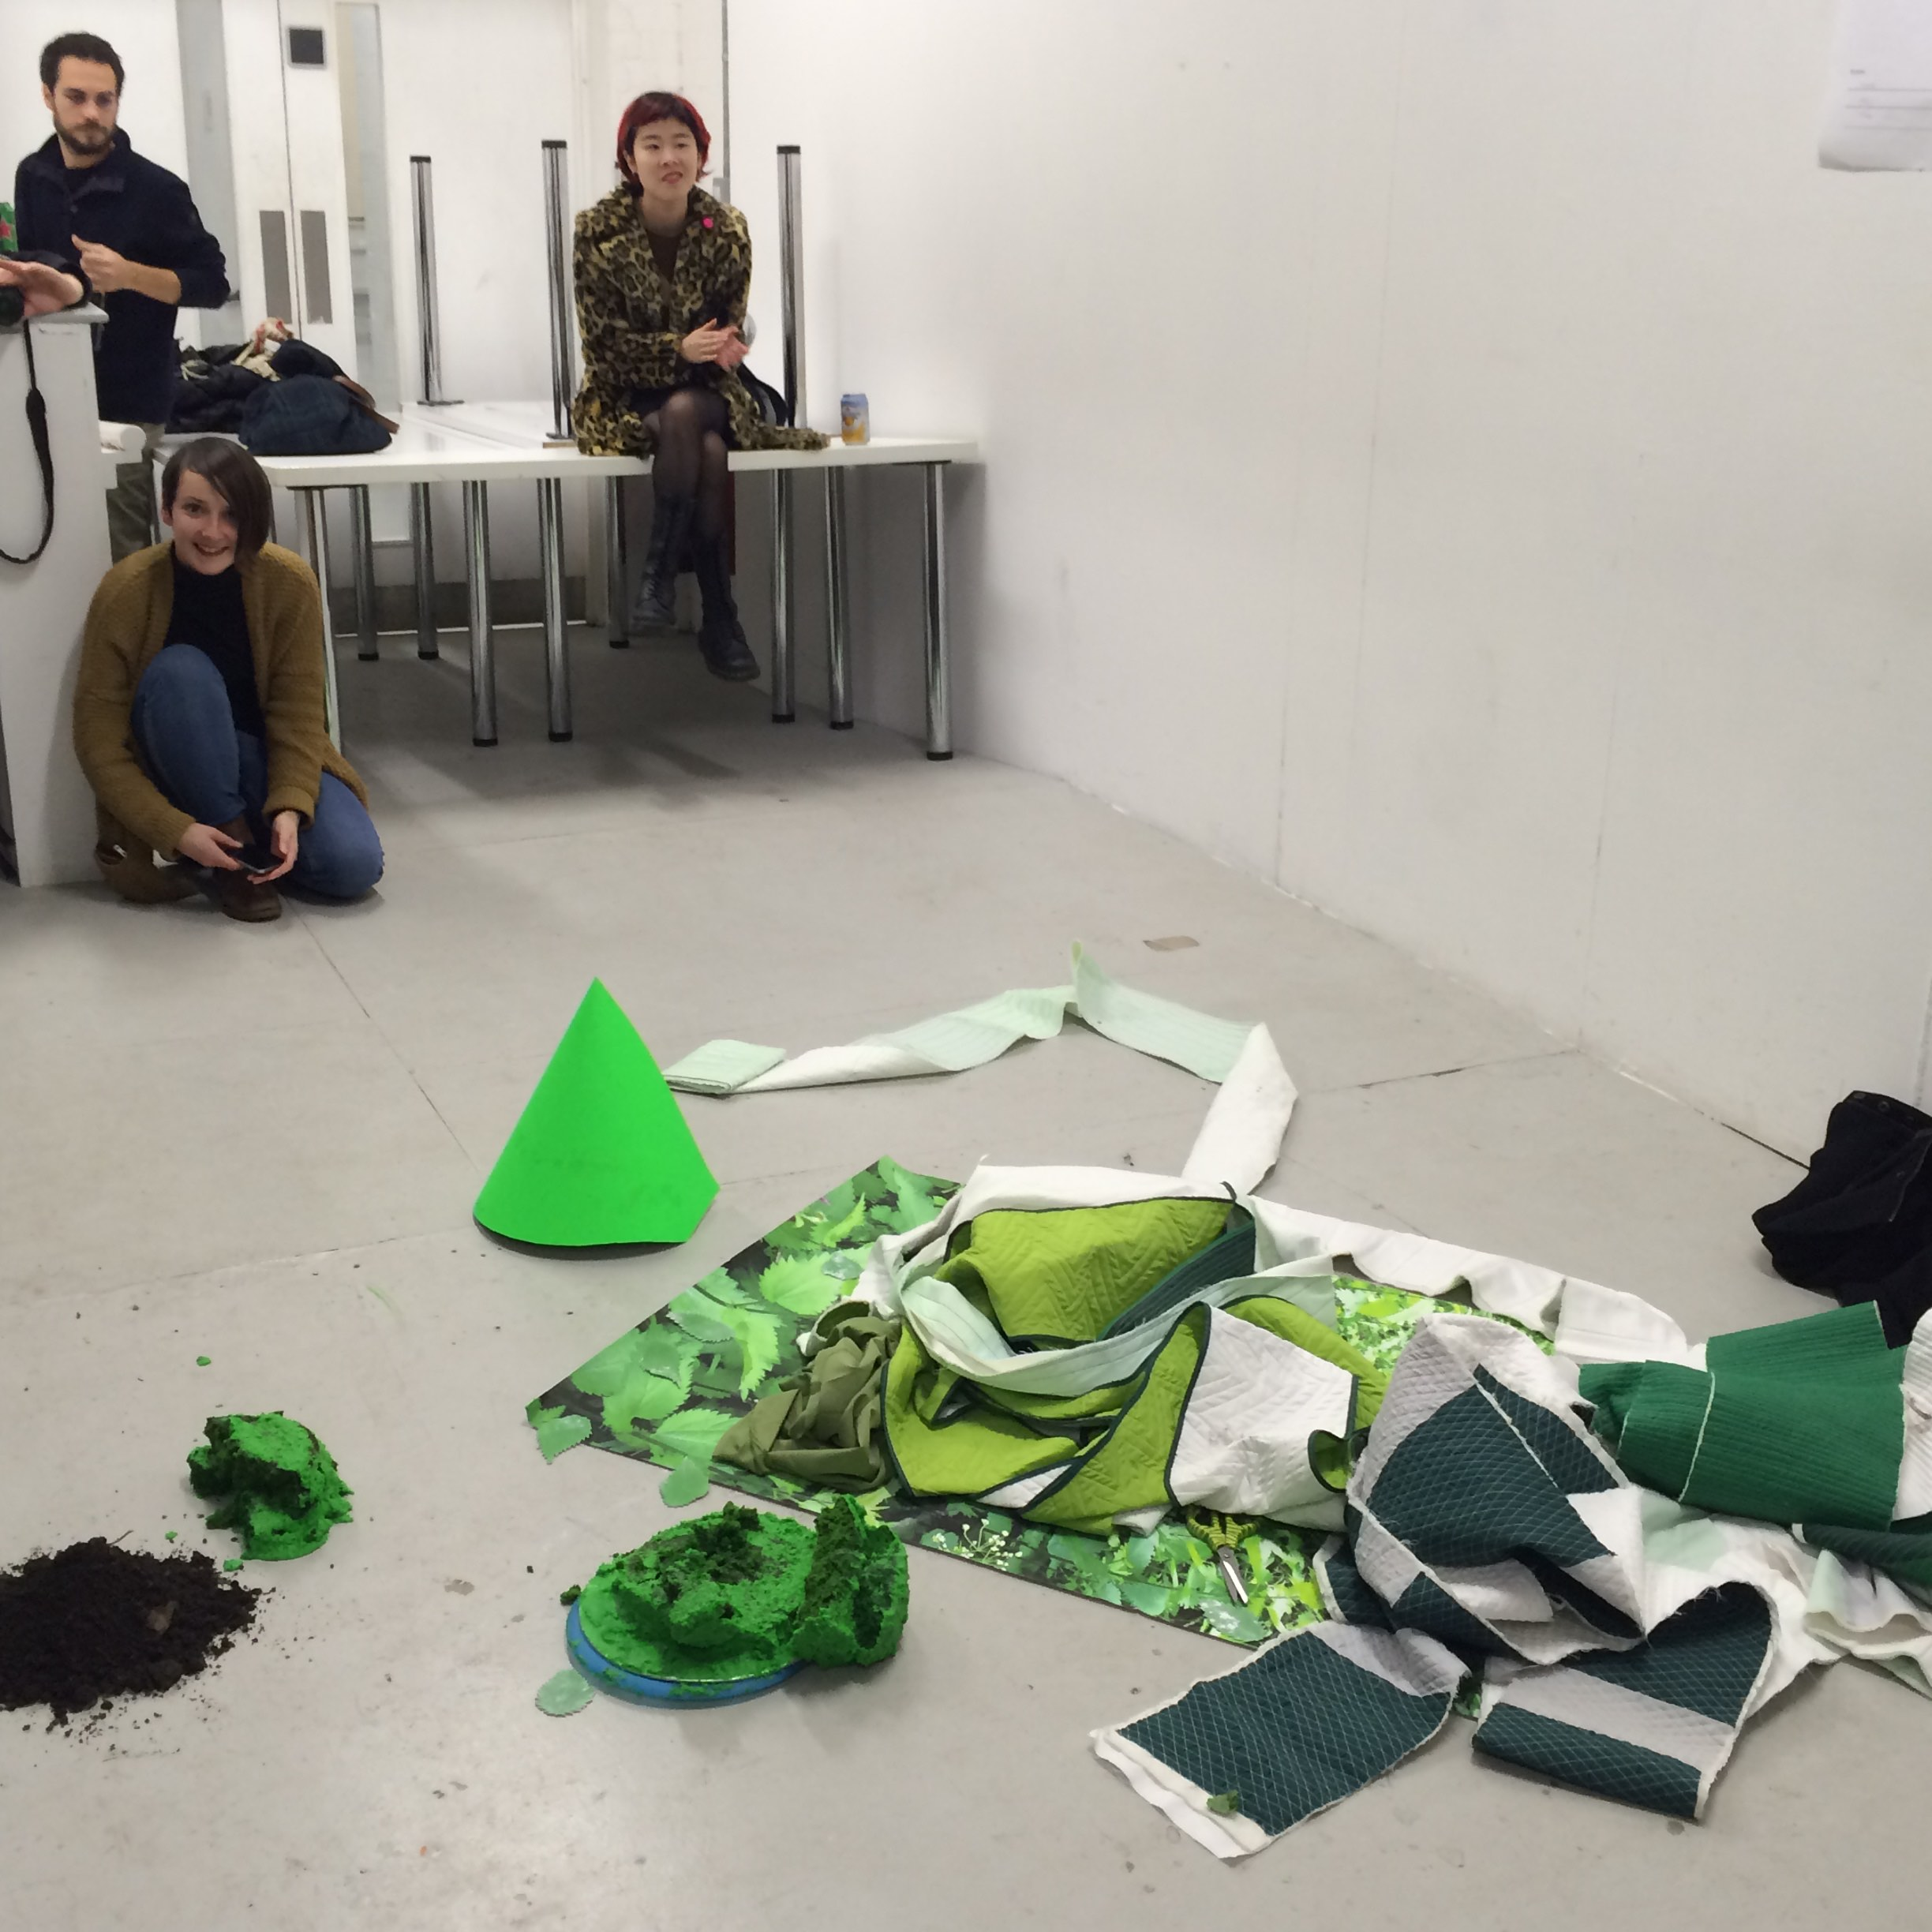 Laura McCafferty, Live Performance, The Emergence of Character (2015) Goldsmiths University